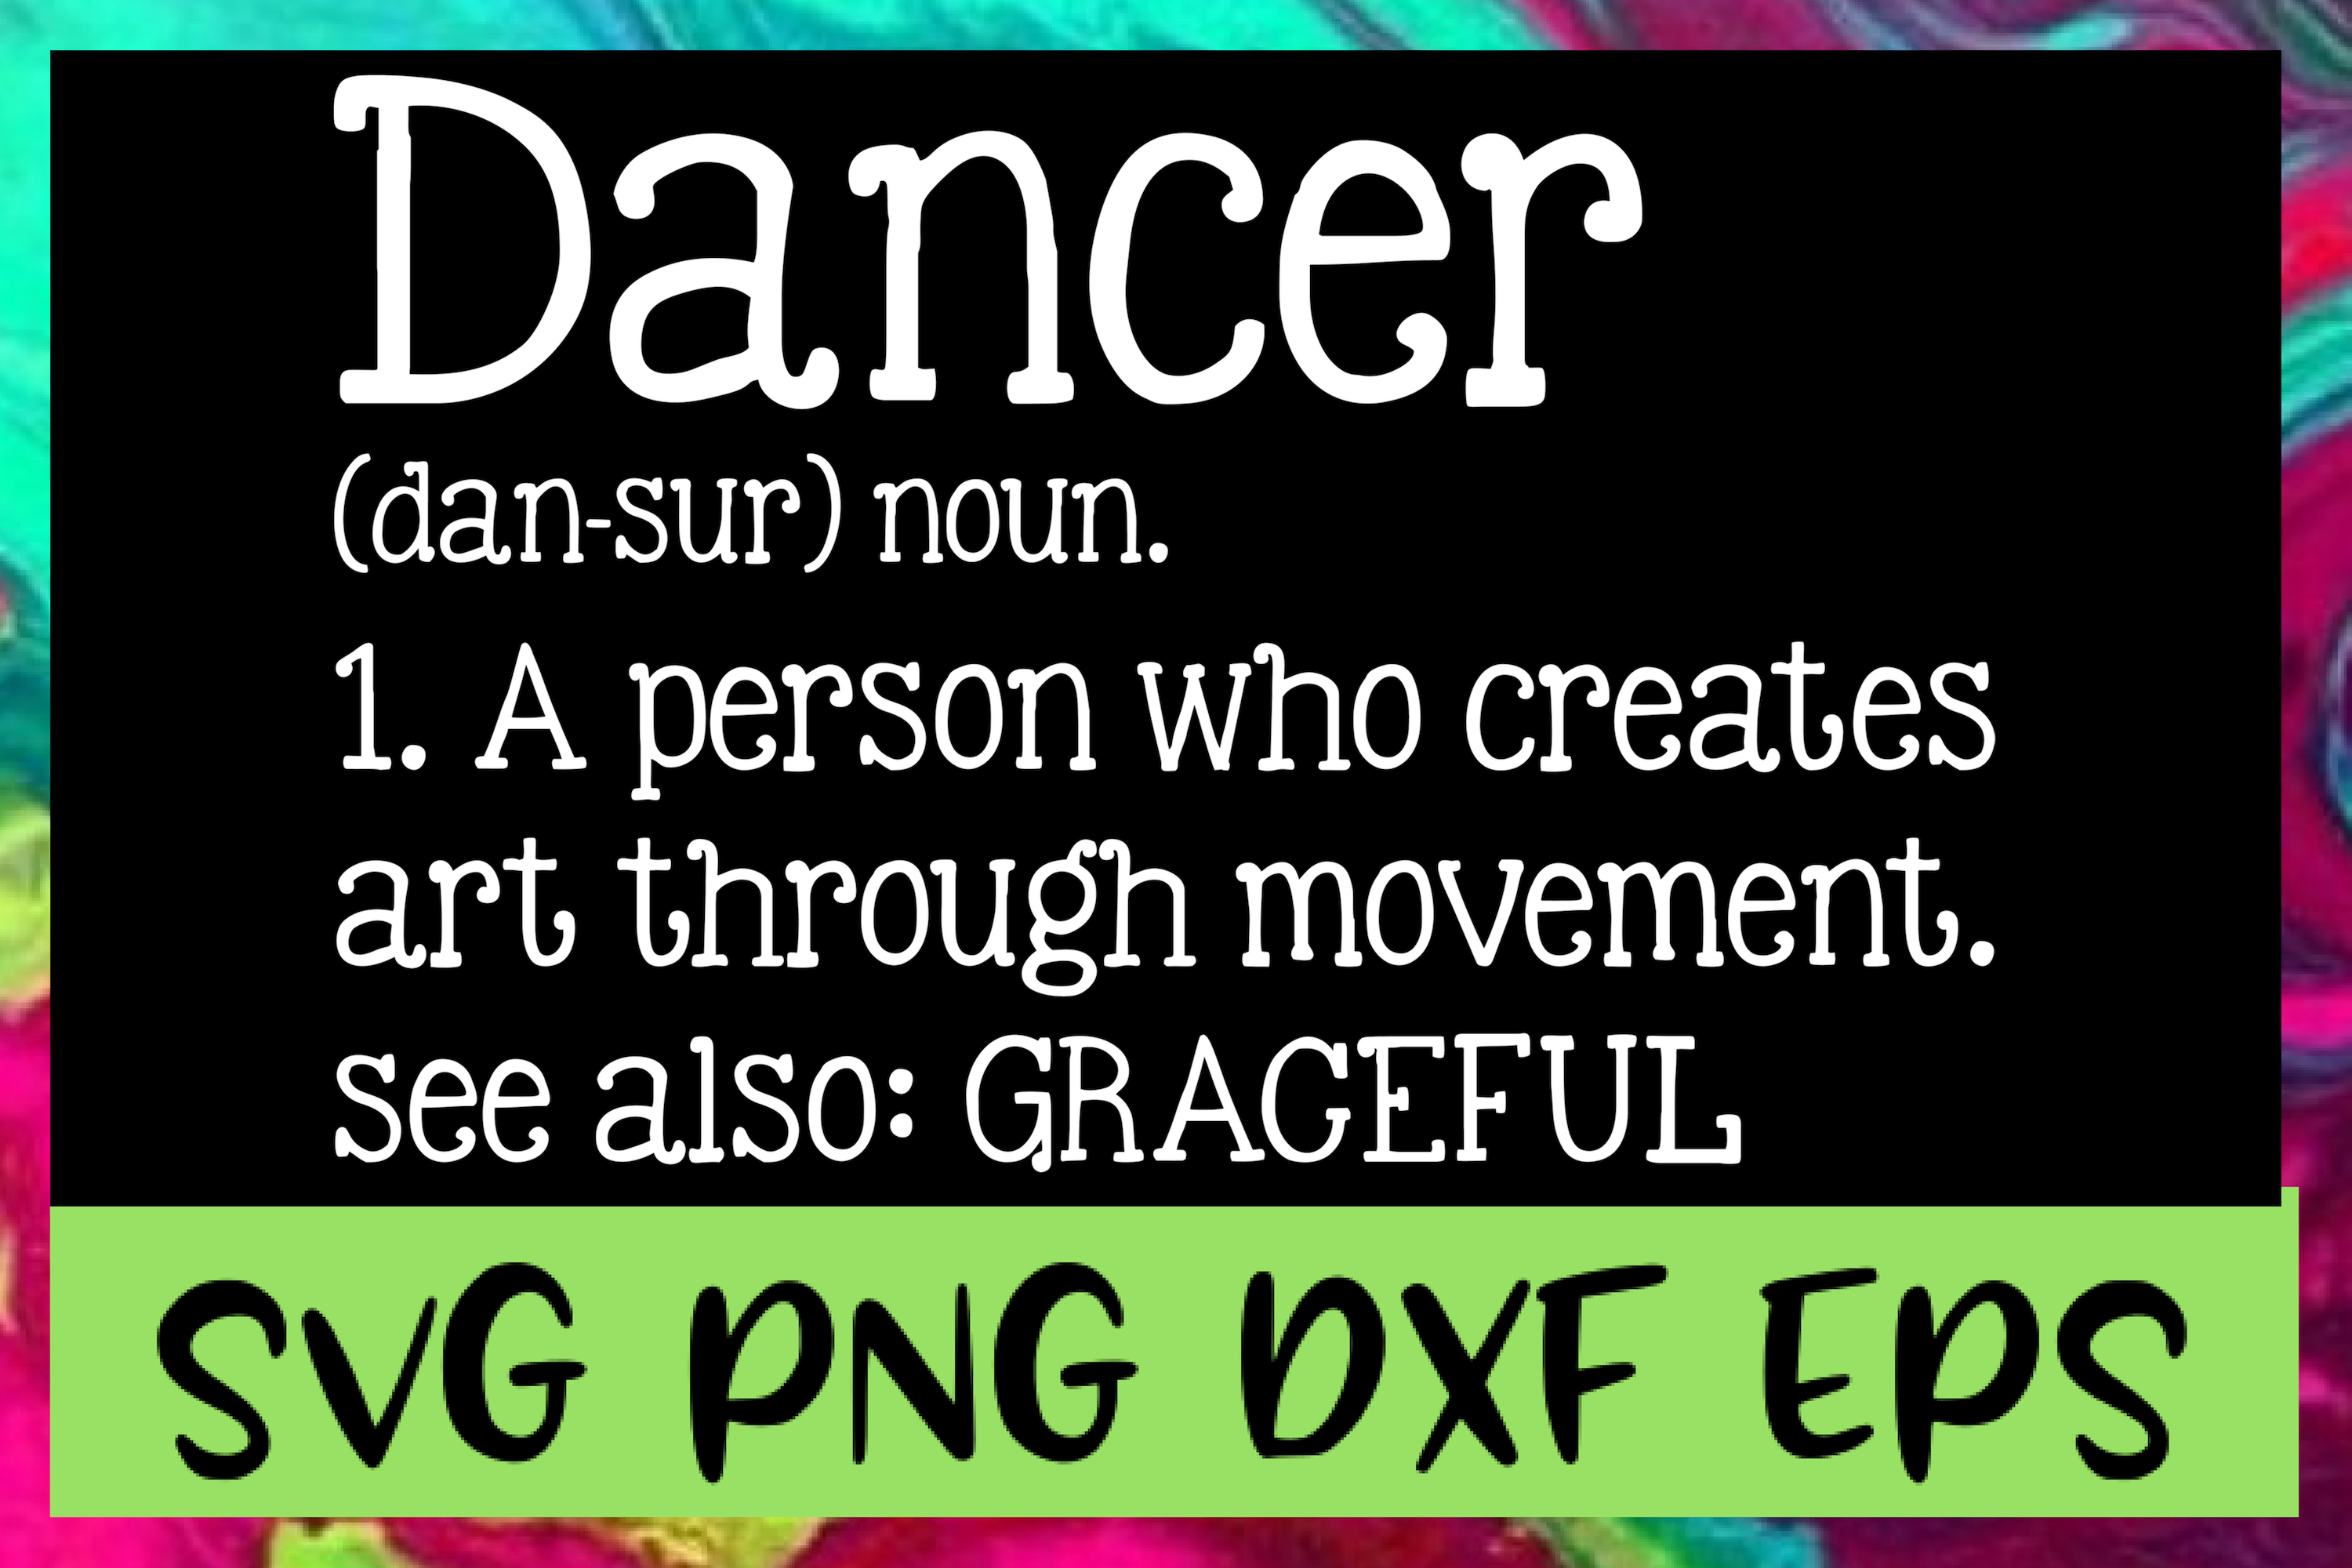 Dancer Definition SVG PNG DXF & EPS Design Files example image 1